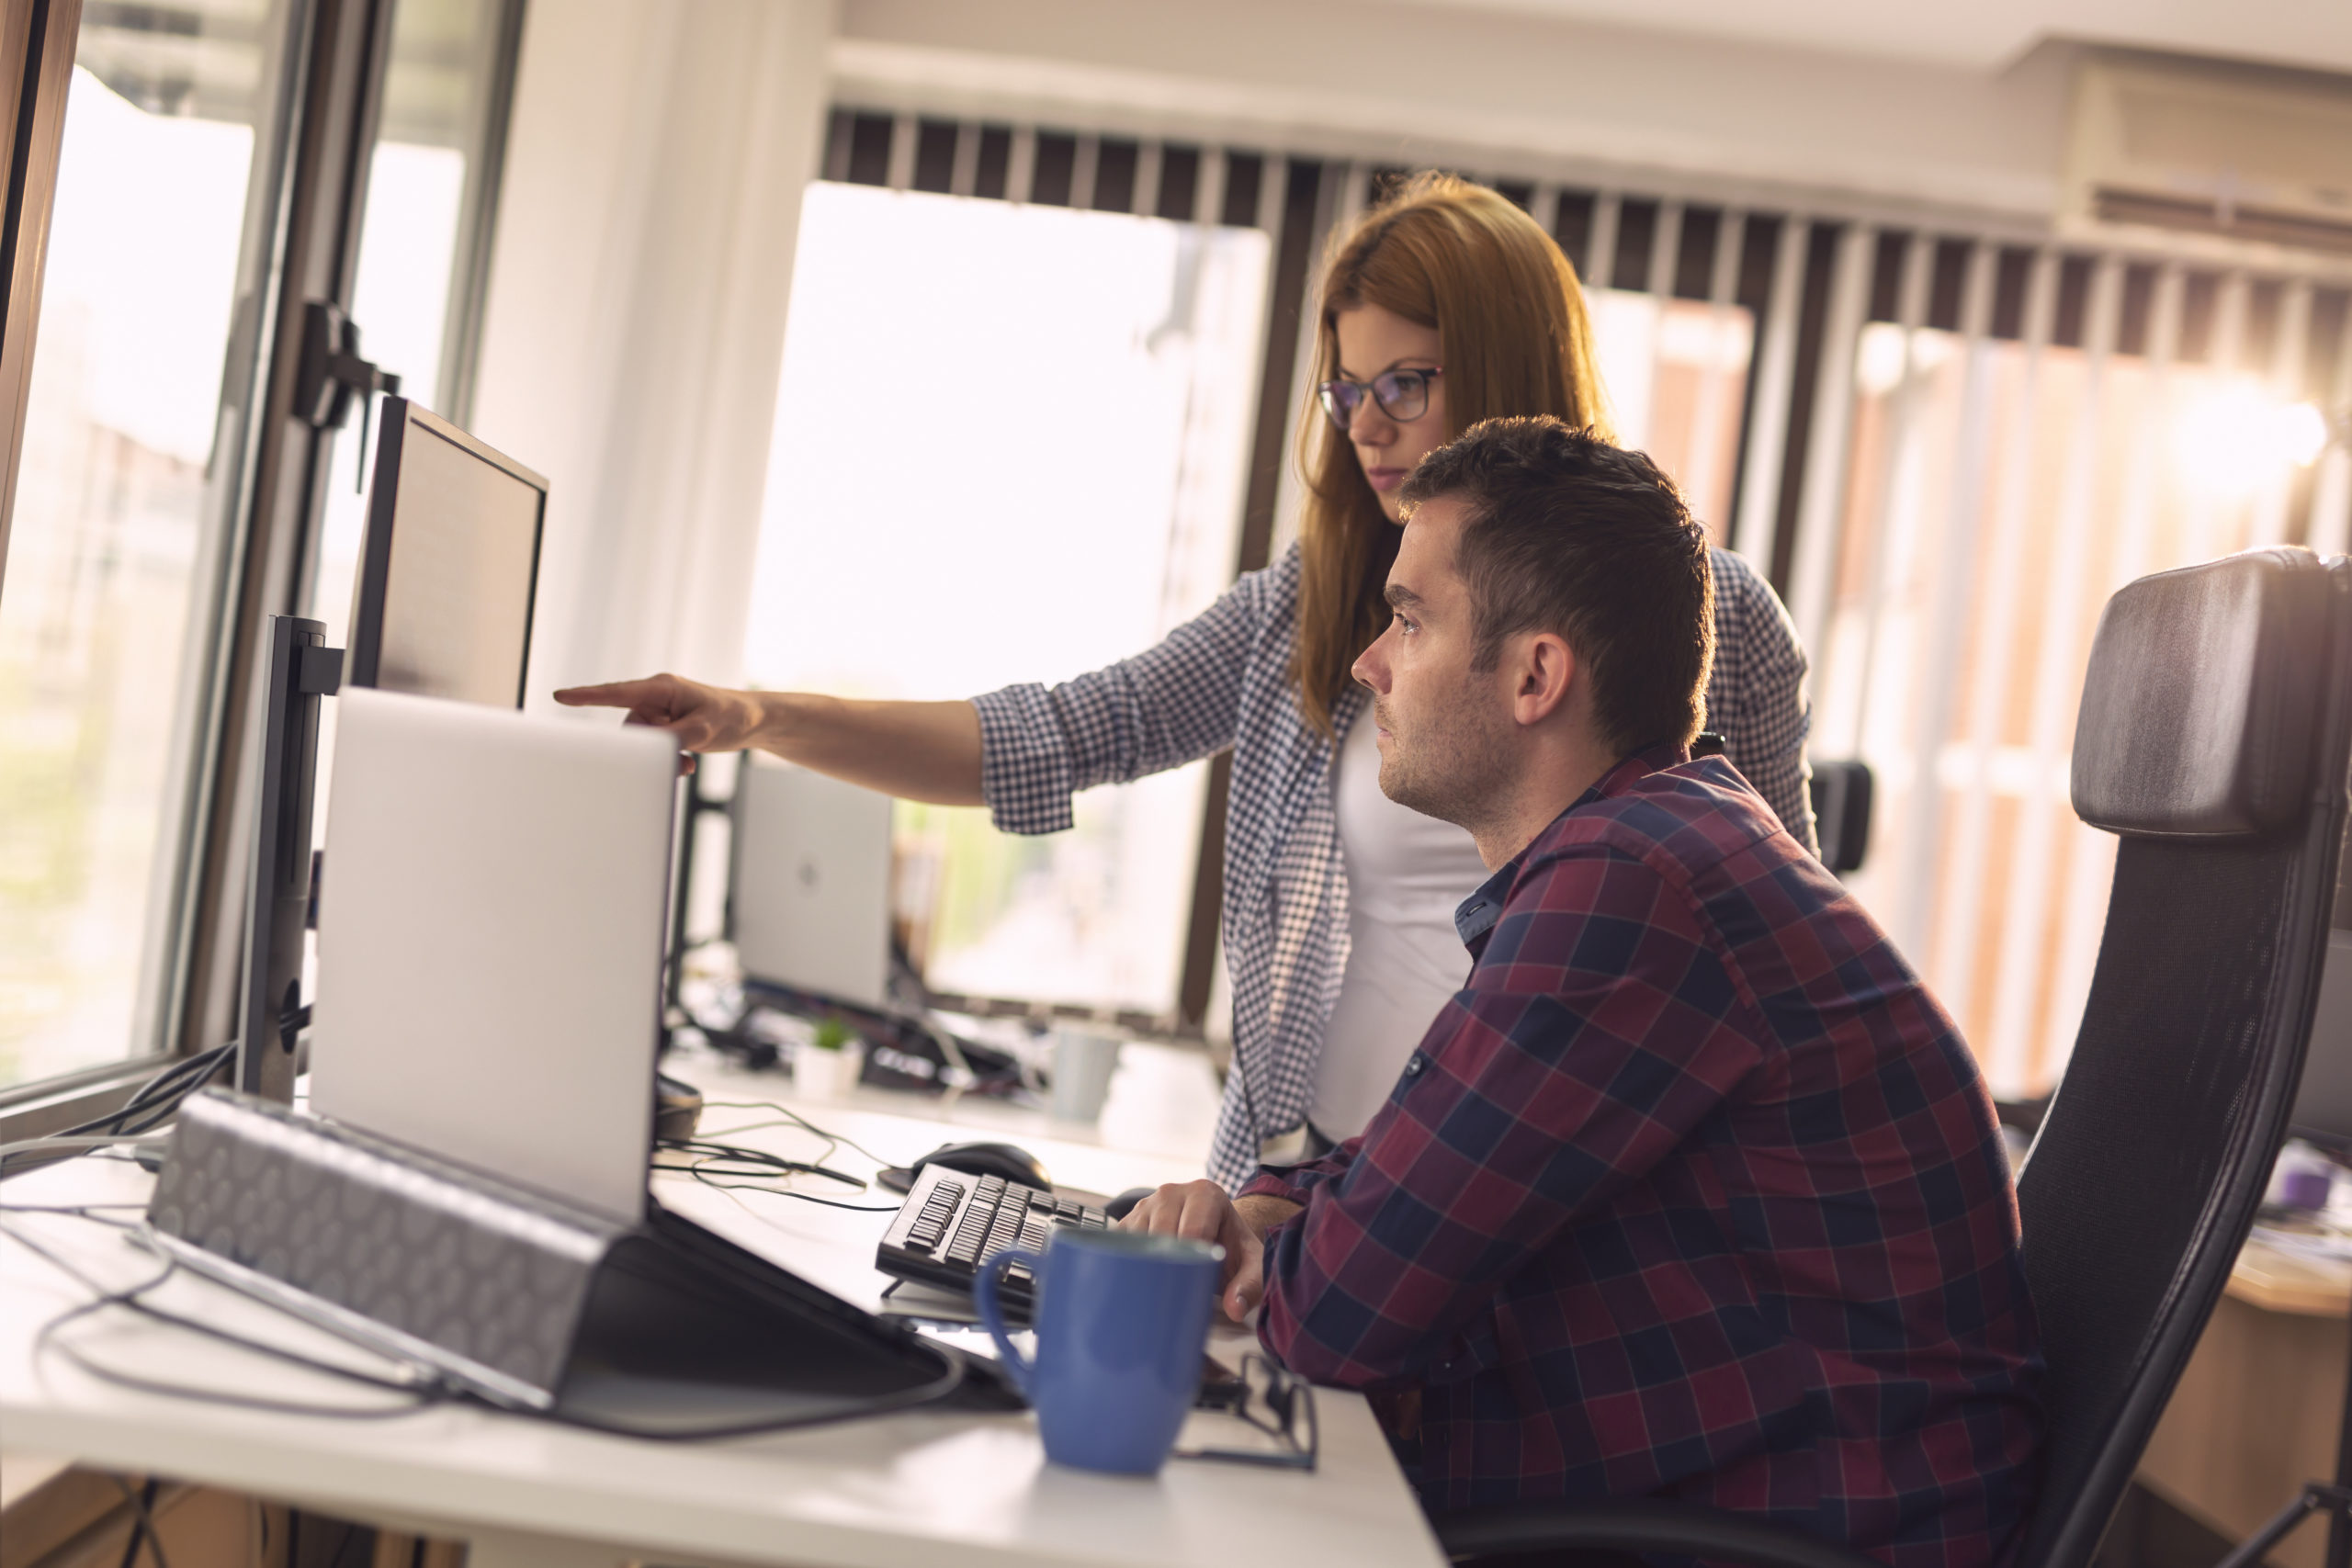 Two software developers working on a new project in a software developing company office. Focus on the woman poiting to the comuter screen